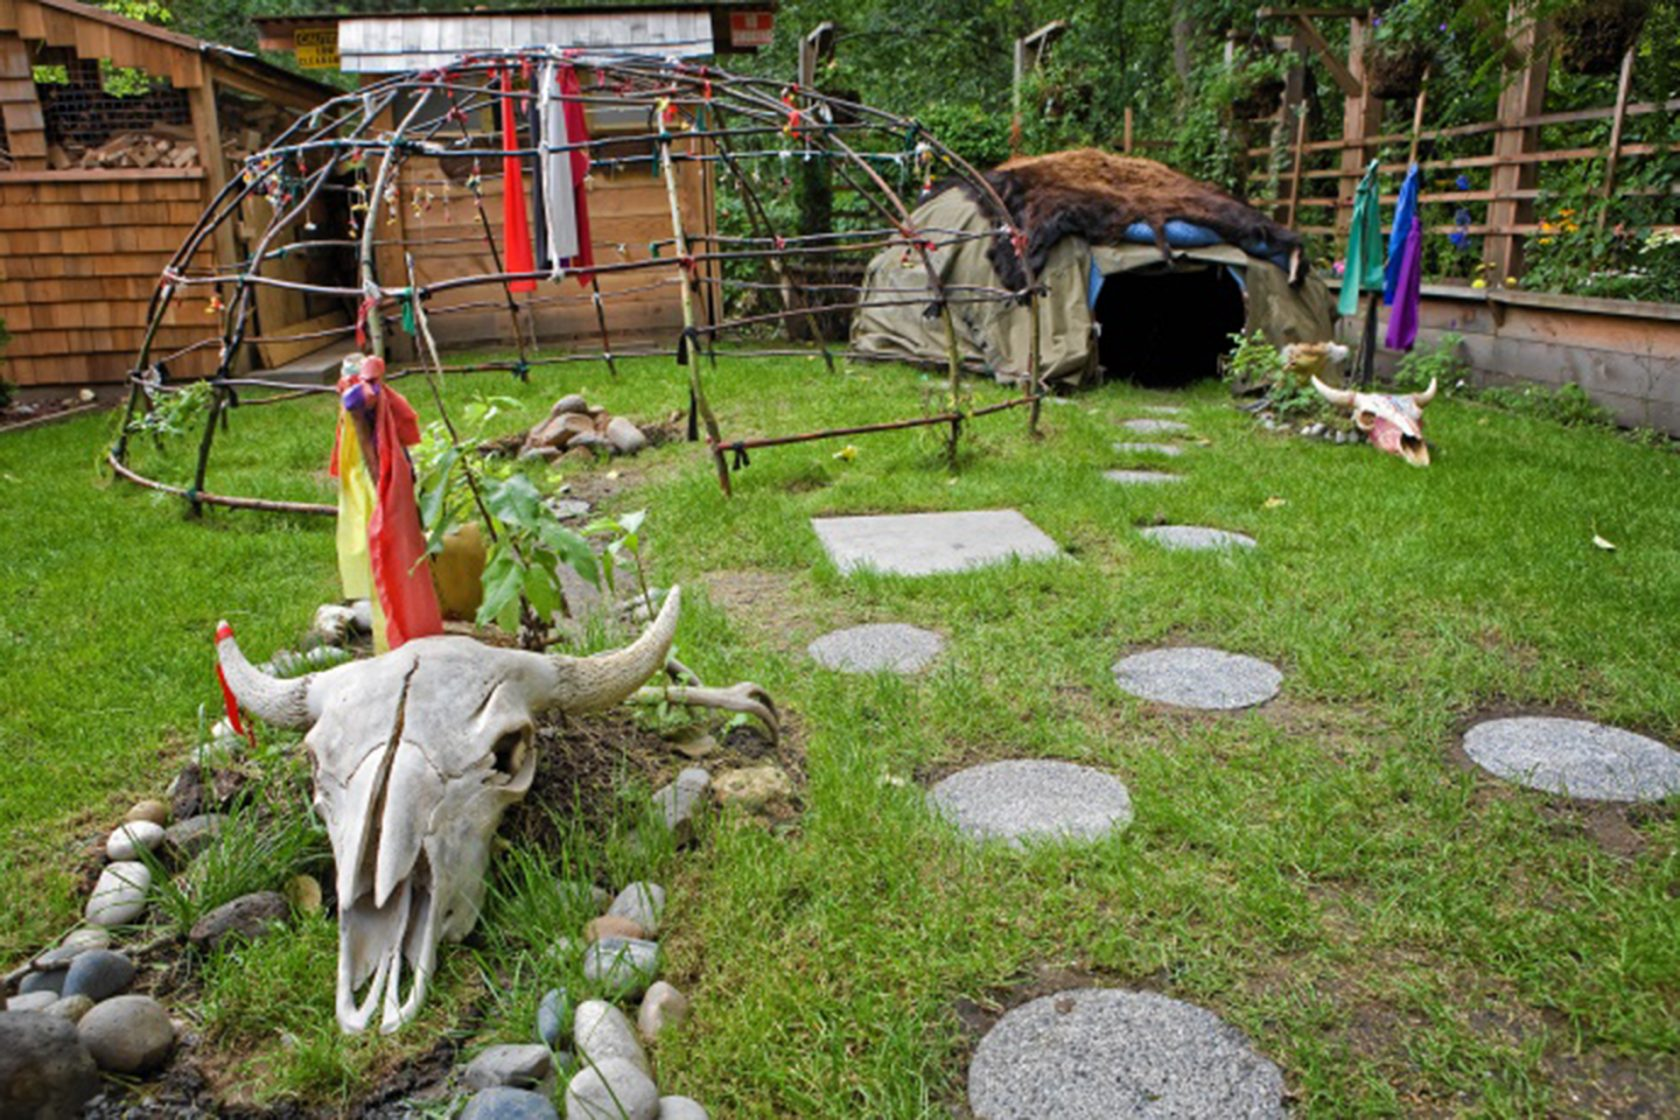 treatment centre surrey Phoenix-drug-and-alcohol-recovery-and-education-society-sweat-lodge-img